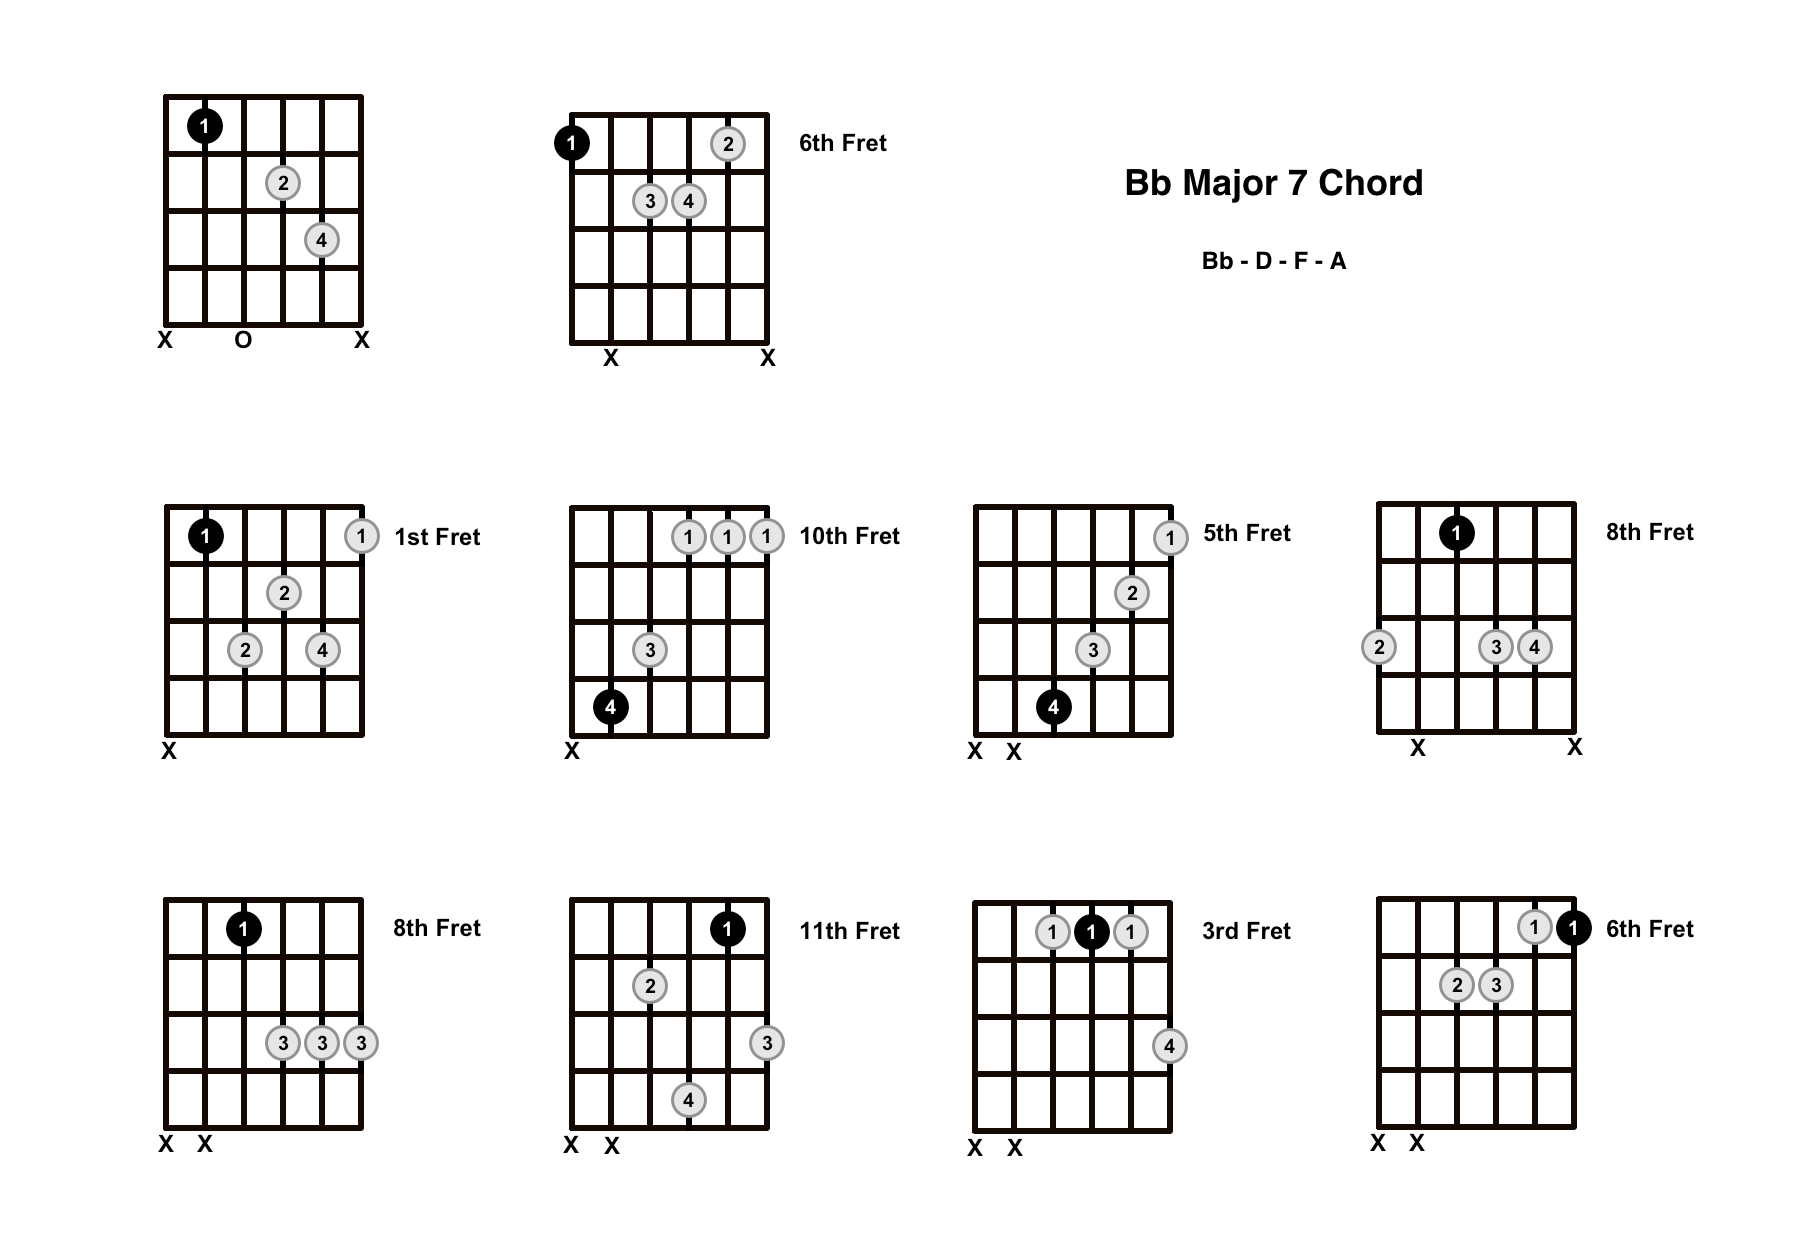 B Flat Major 7 Chord On The Guitar (Bb Maj 7) – Diagrams, Finger Positions and Theory